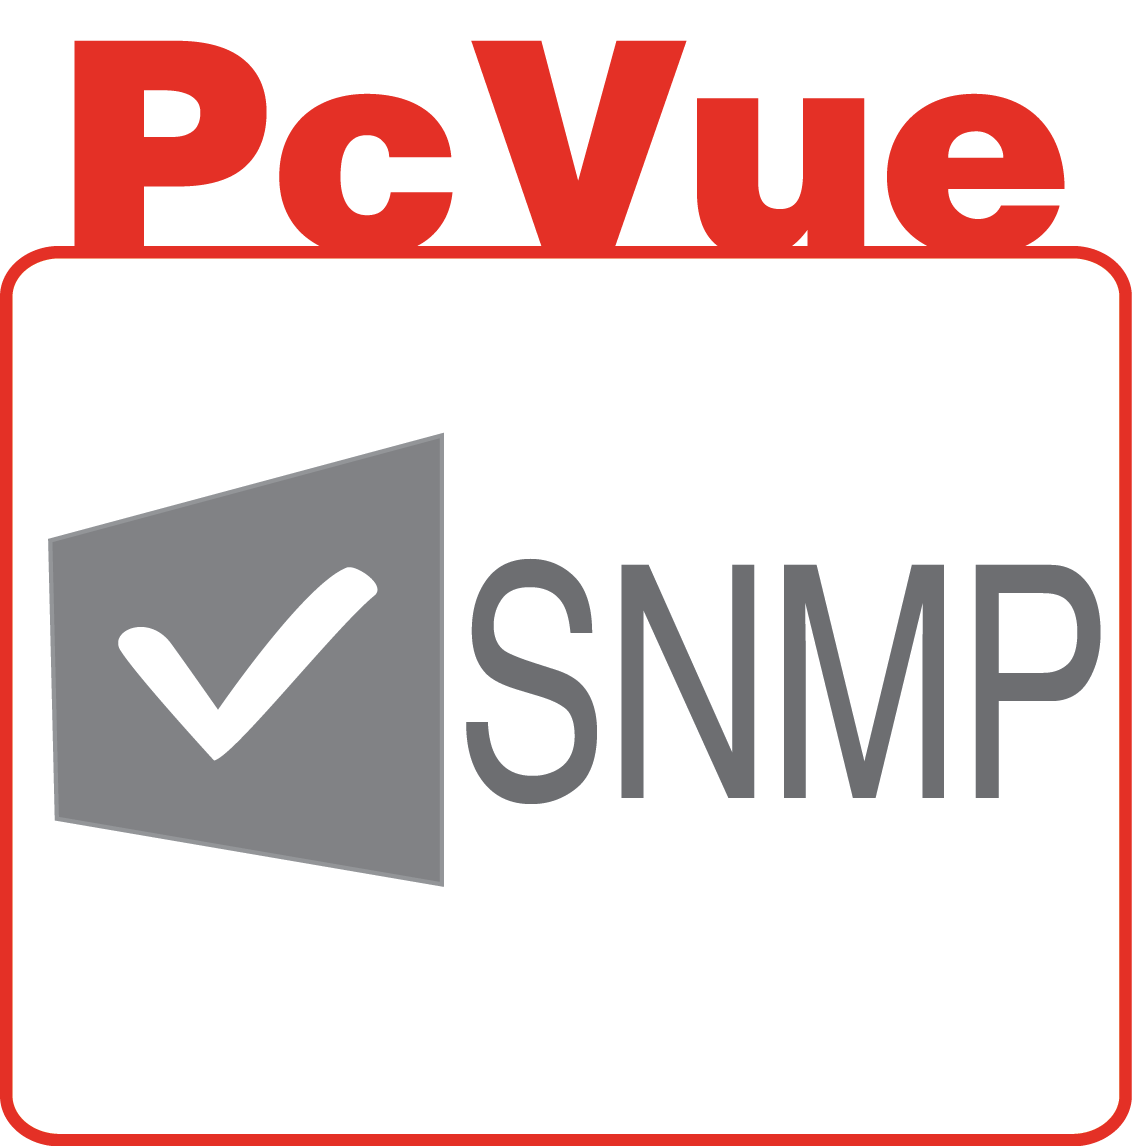 PcVue icon features SNMP